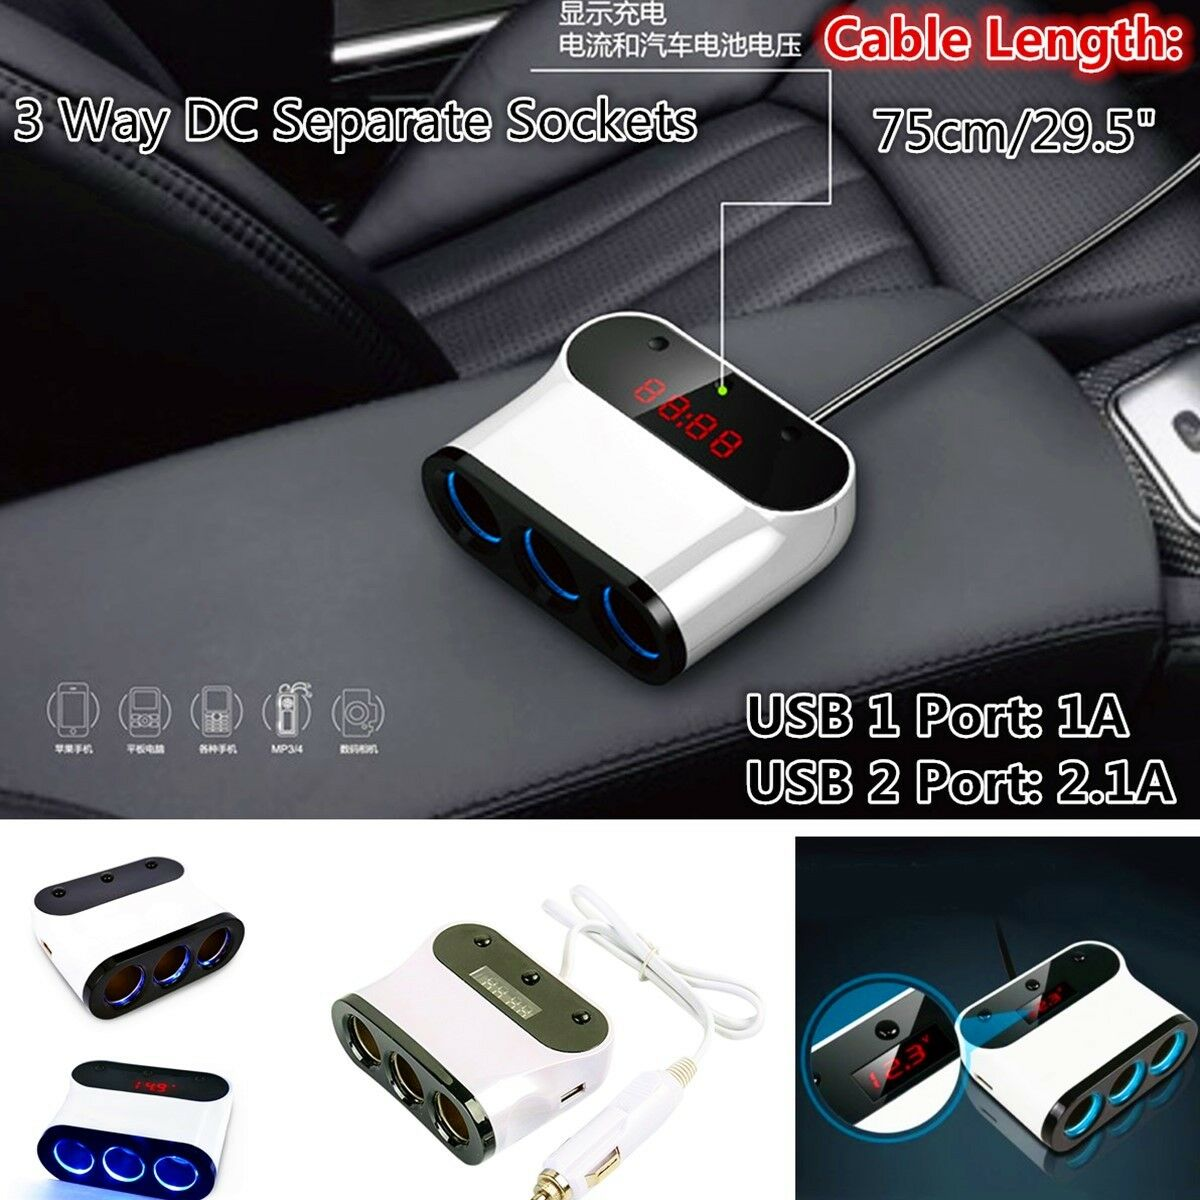 New 3 Way Car Cigarette Lighter Socket Splitter Charger 12v 24v Usb 2 Switch For Port 1 Of 9only Available